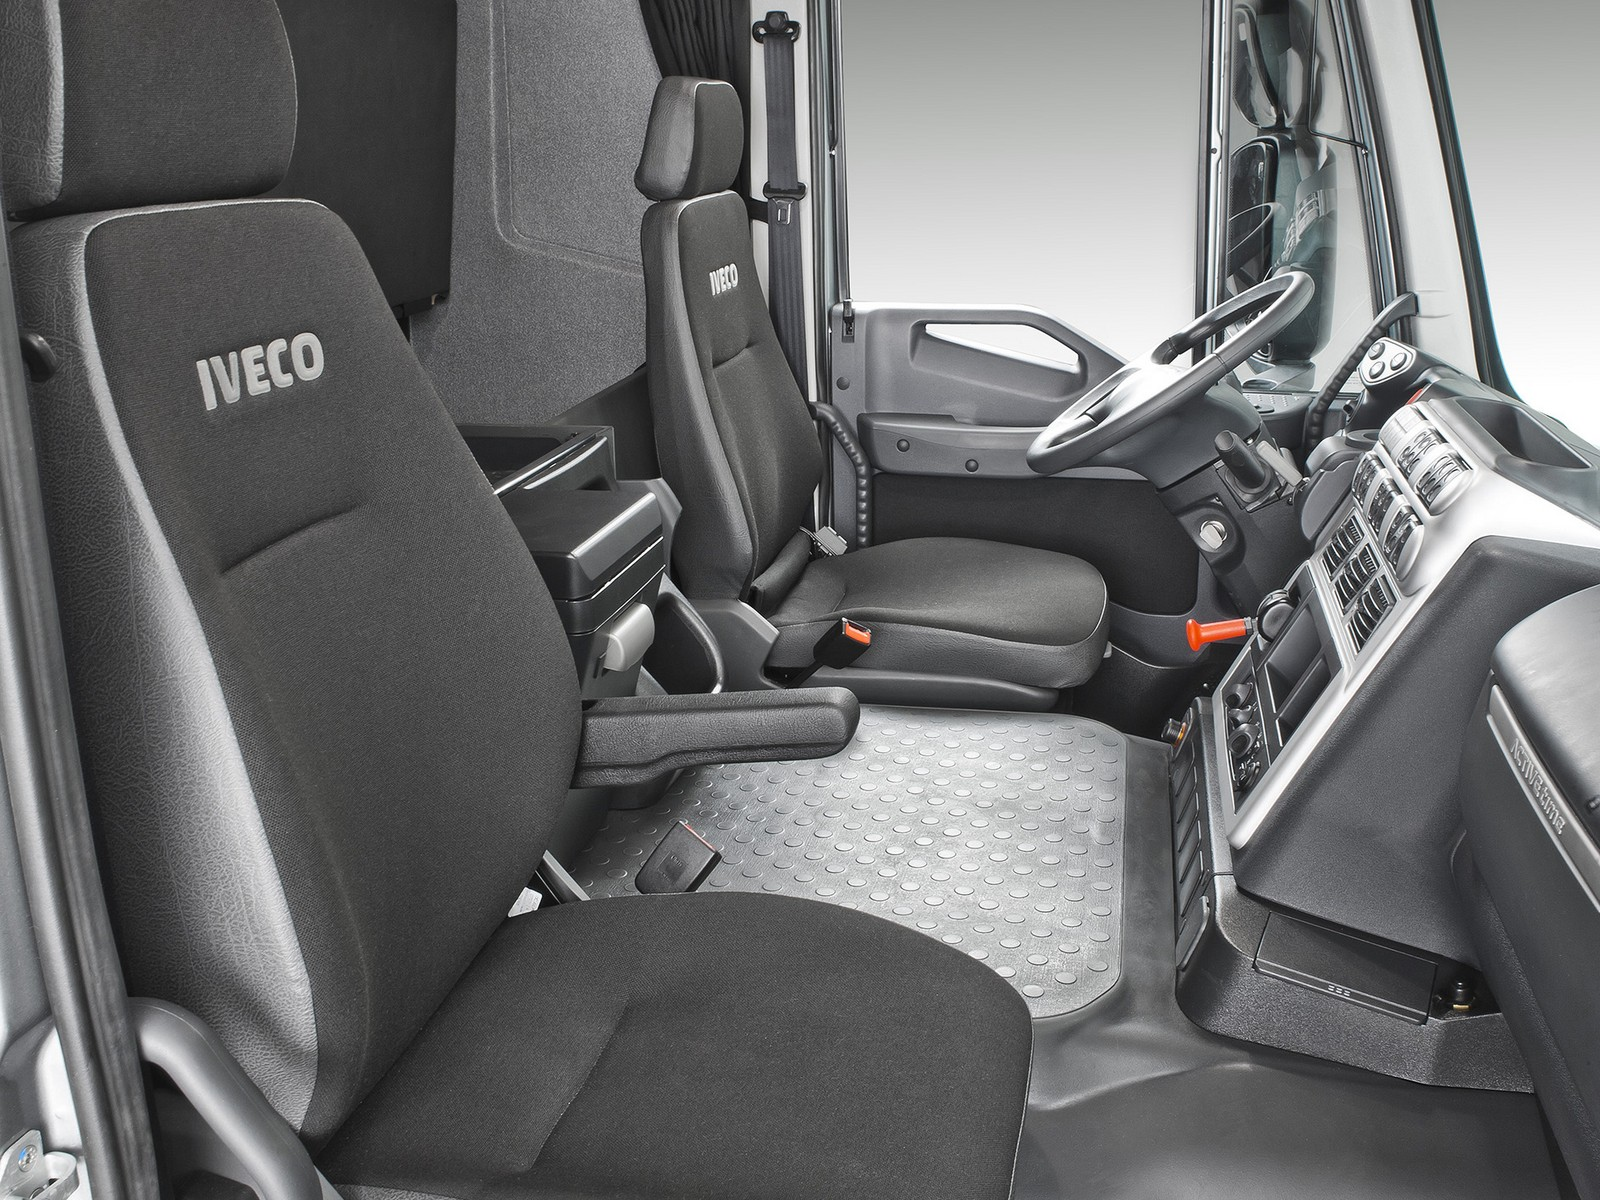 2012 Iveco Stralis 440 6x4 AT BR-spec semi tractor interior g